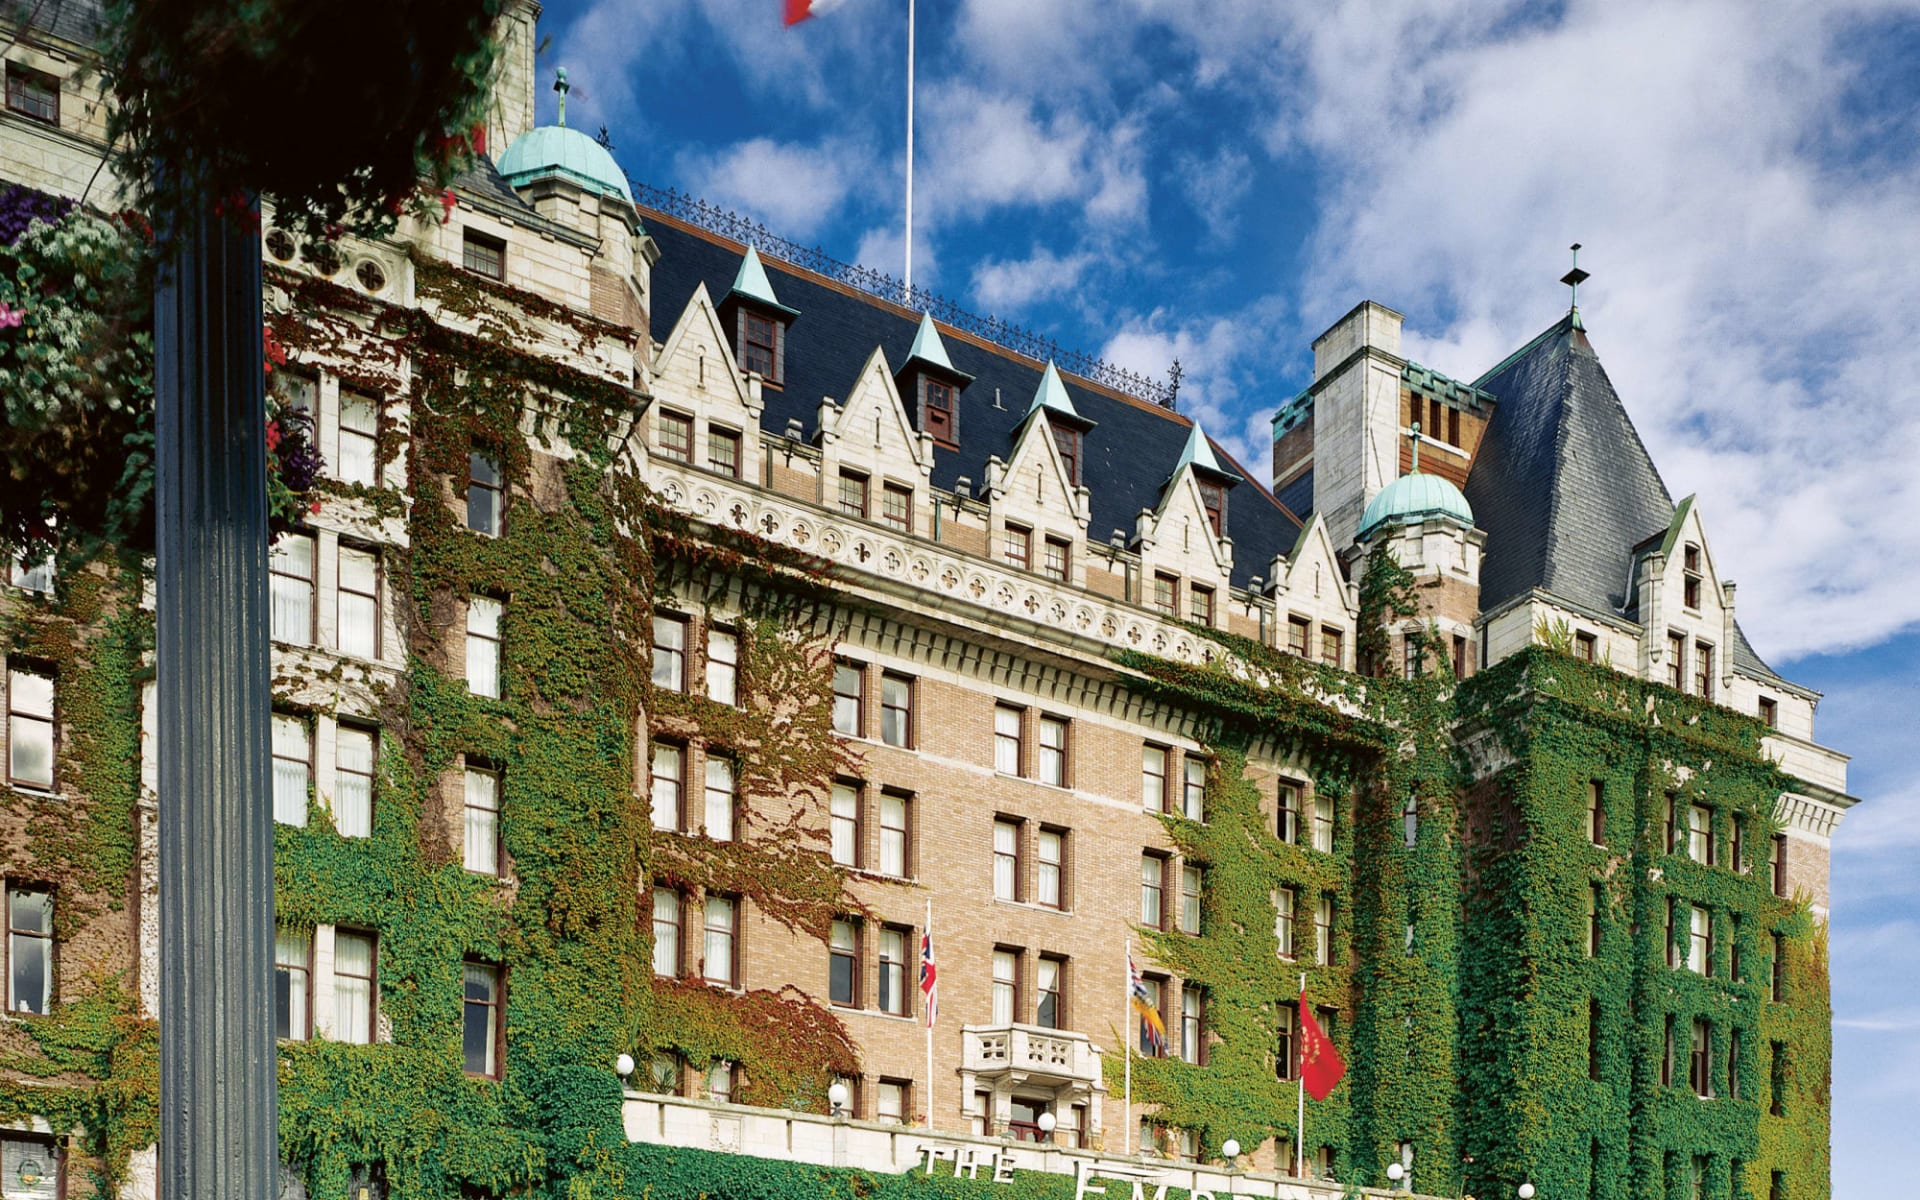 The Fairmont Empress in Victoria: The Fairmont Empress_ViewFromGarden